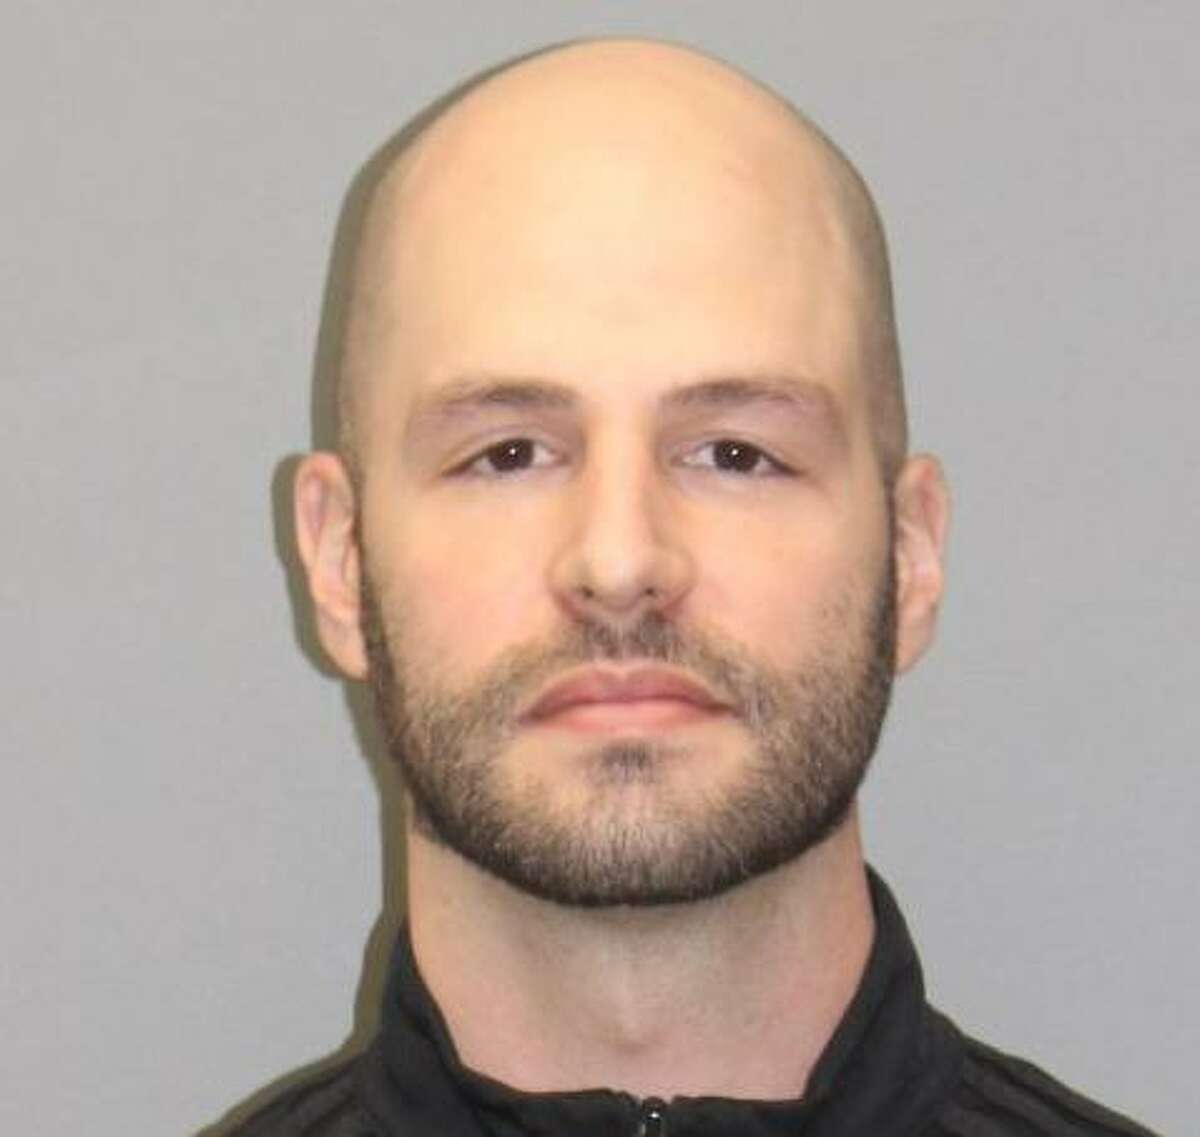 Adam Randazzo, 35, of Barbara Road in South Windsor, Conn., with eight counts of illegal possession of a high-capacity magazine when he turned himself in at police headquarters around 6 p.m. Monday, Jan. 11, 2021.